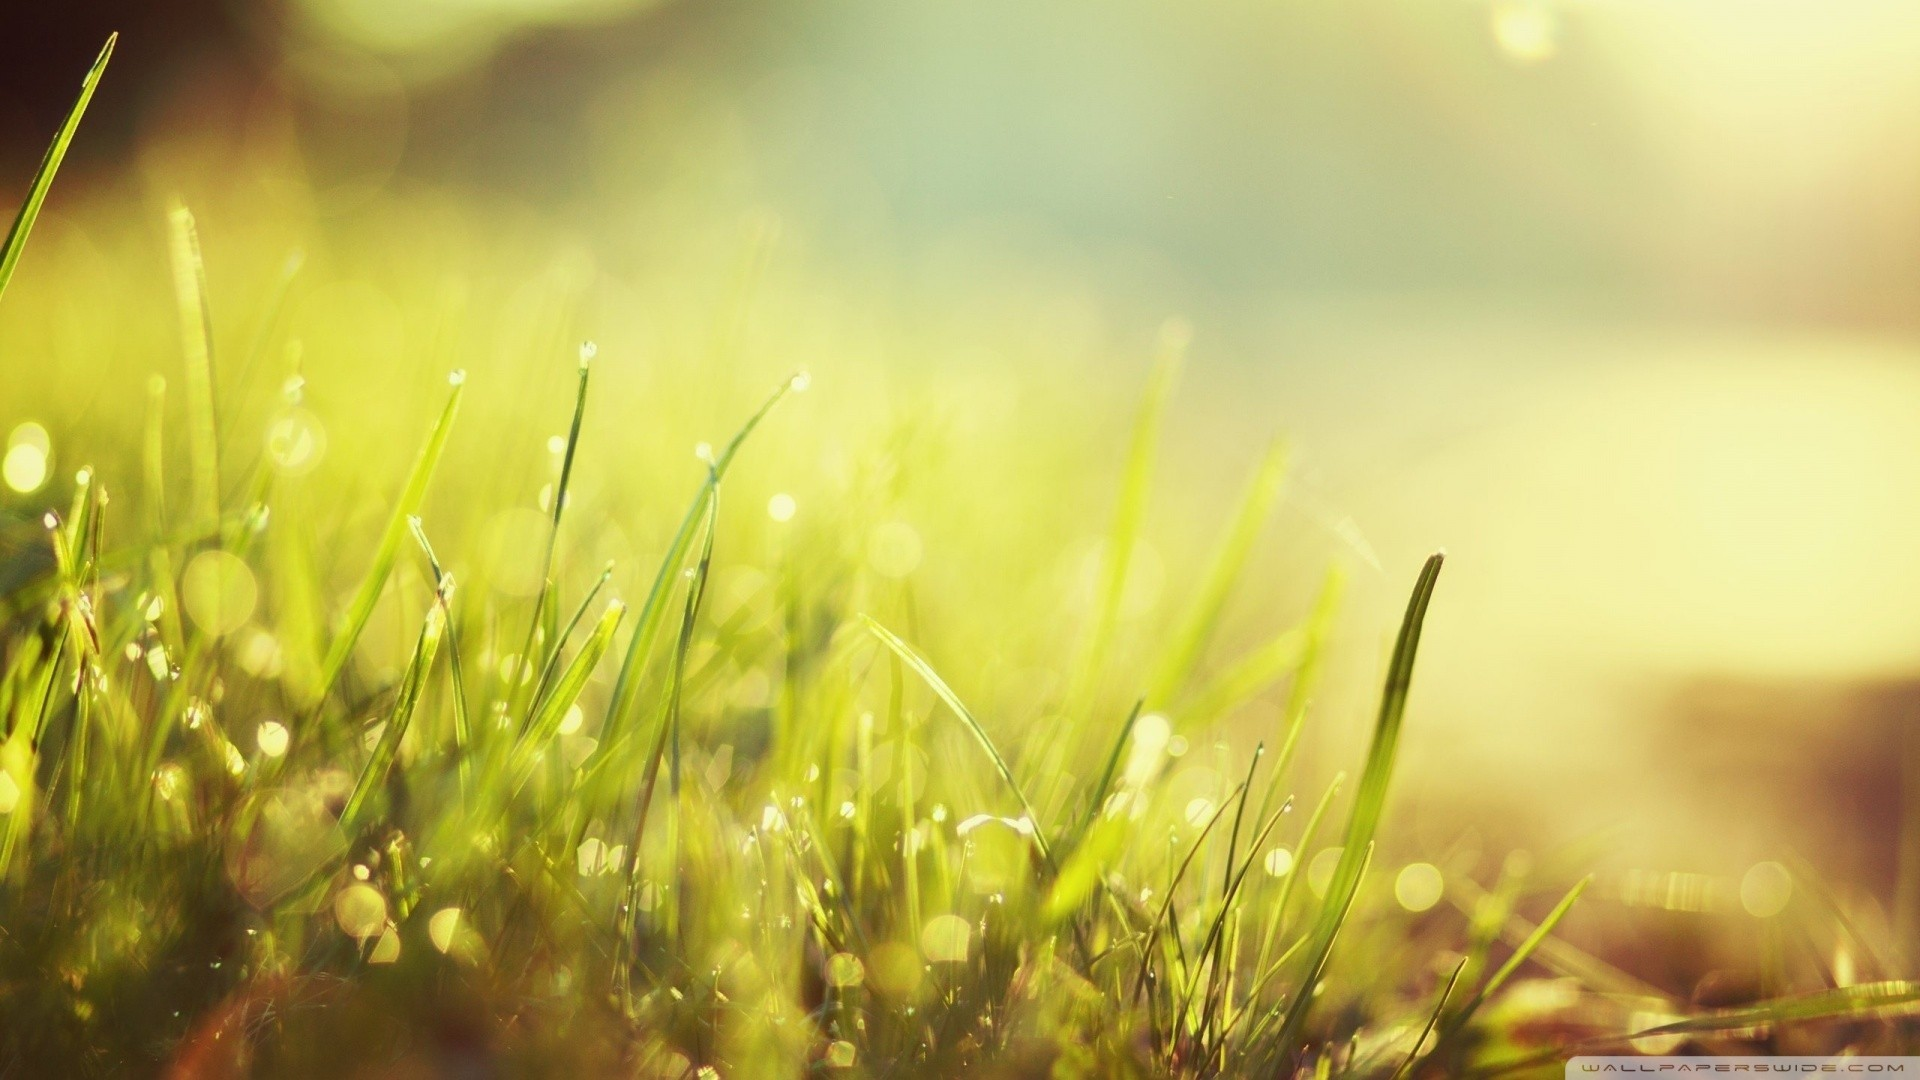 1920x1080 Green nature grass sunlight wallpaper